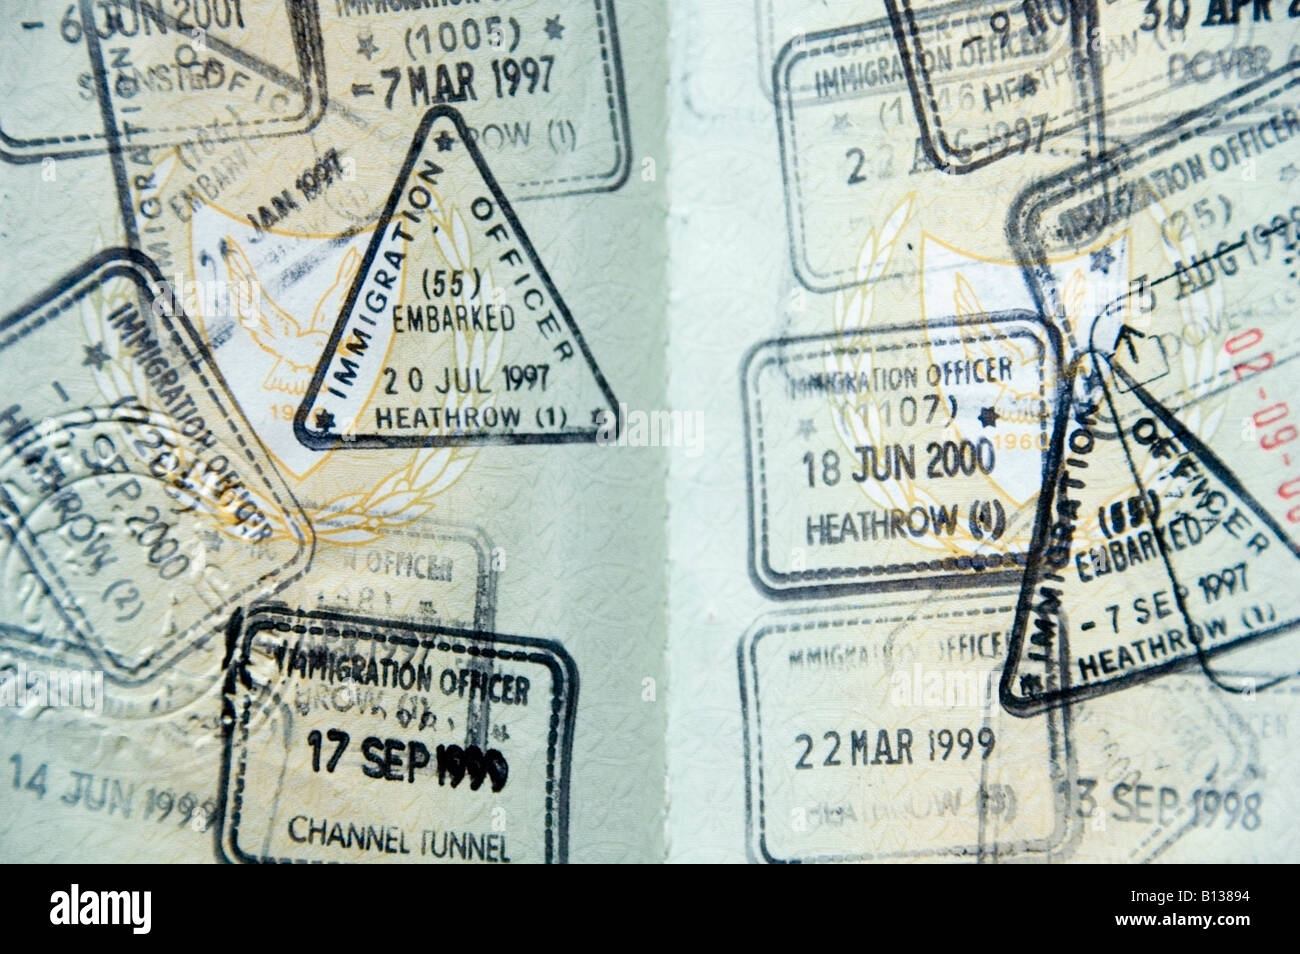 English channel tunnel stock photos english channel tunnel stock english mixed visa stamps in a passport to enter united kingdom from known uk border control ccuart Images